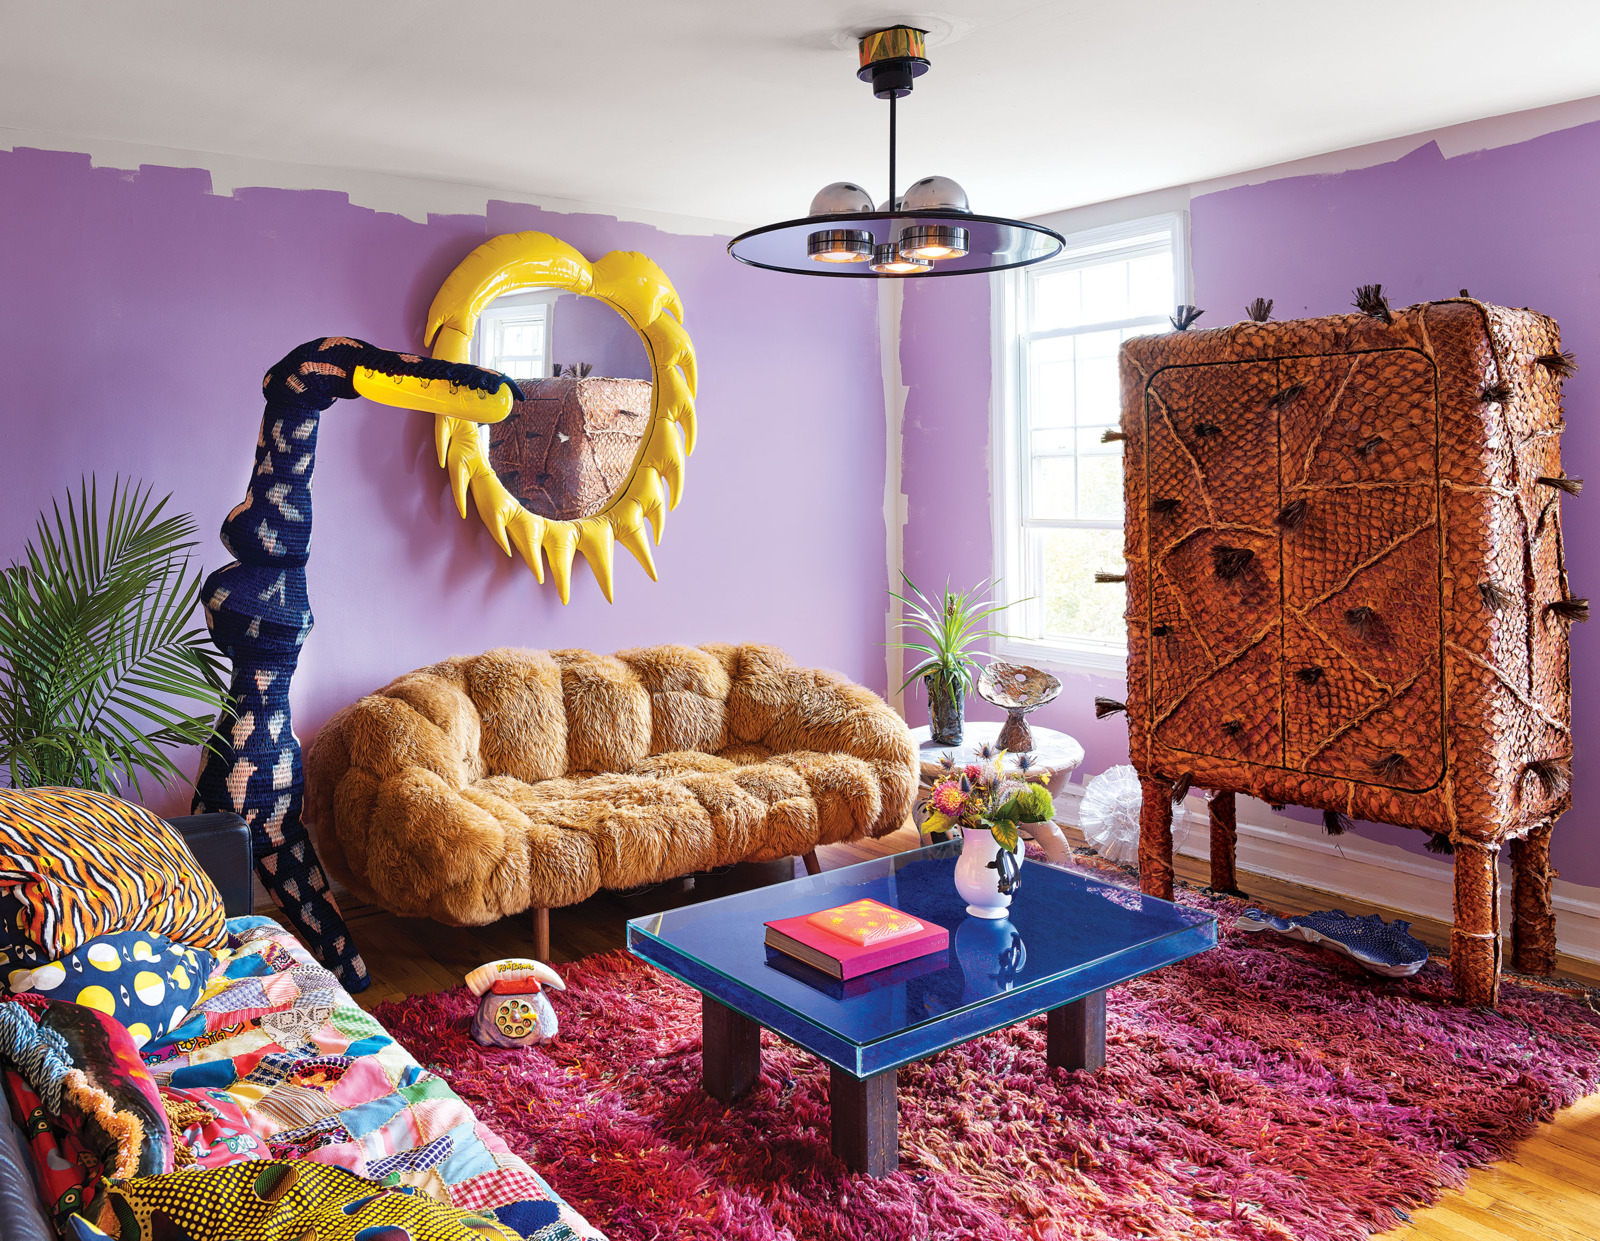 This colorful home is pure craziness, full of colors, bold designs, unusual furniture and accessories